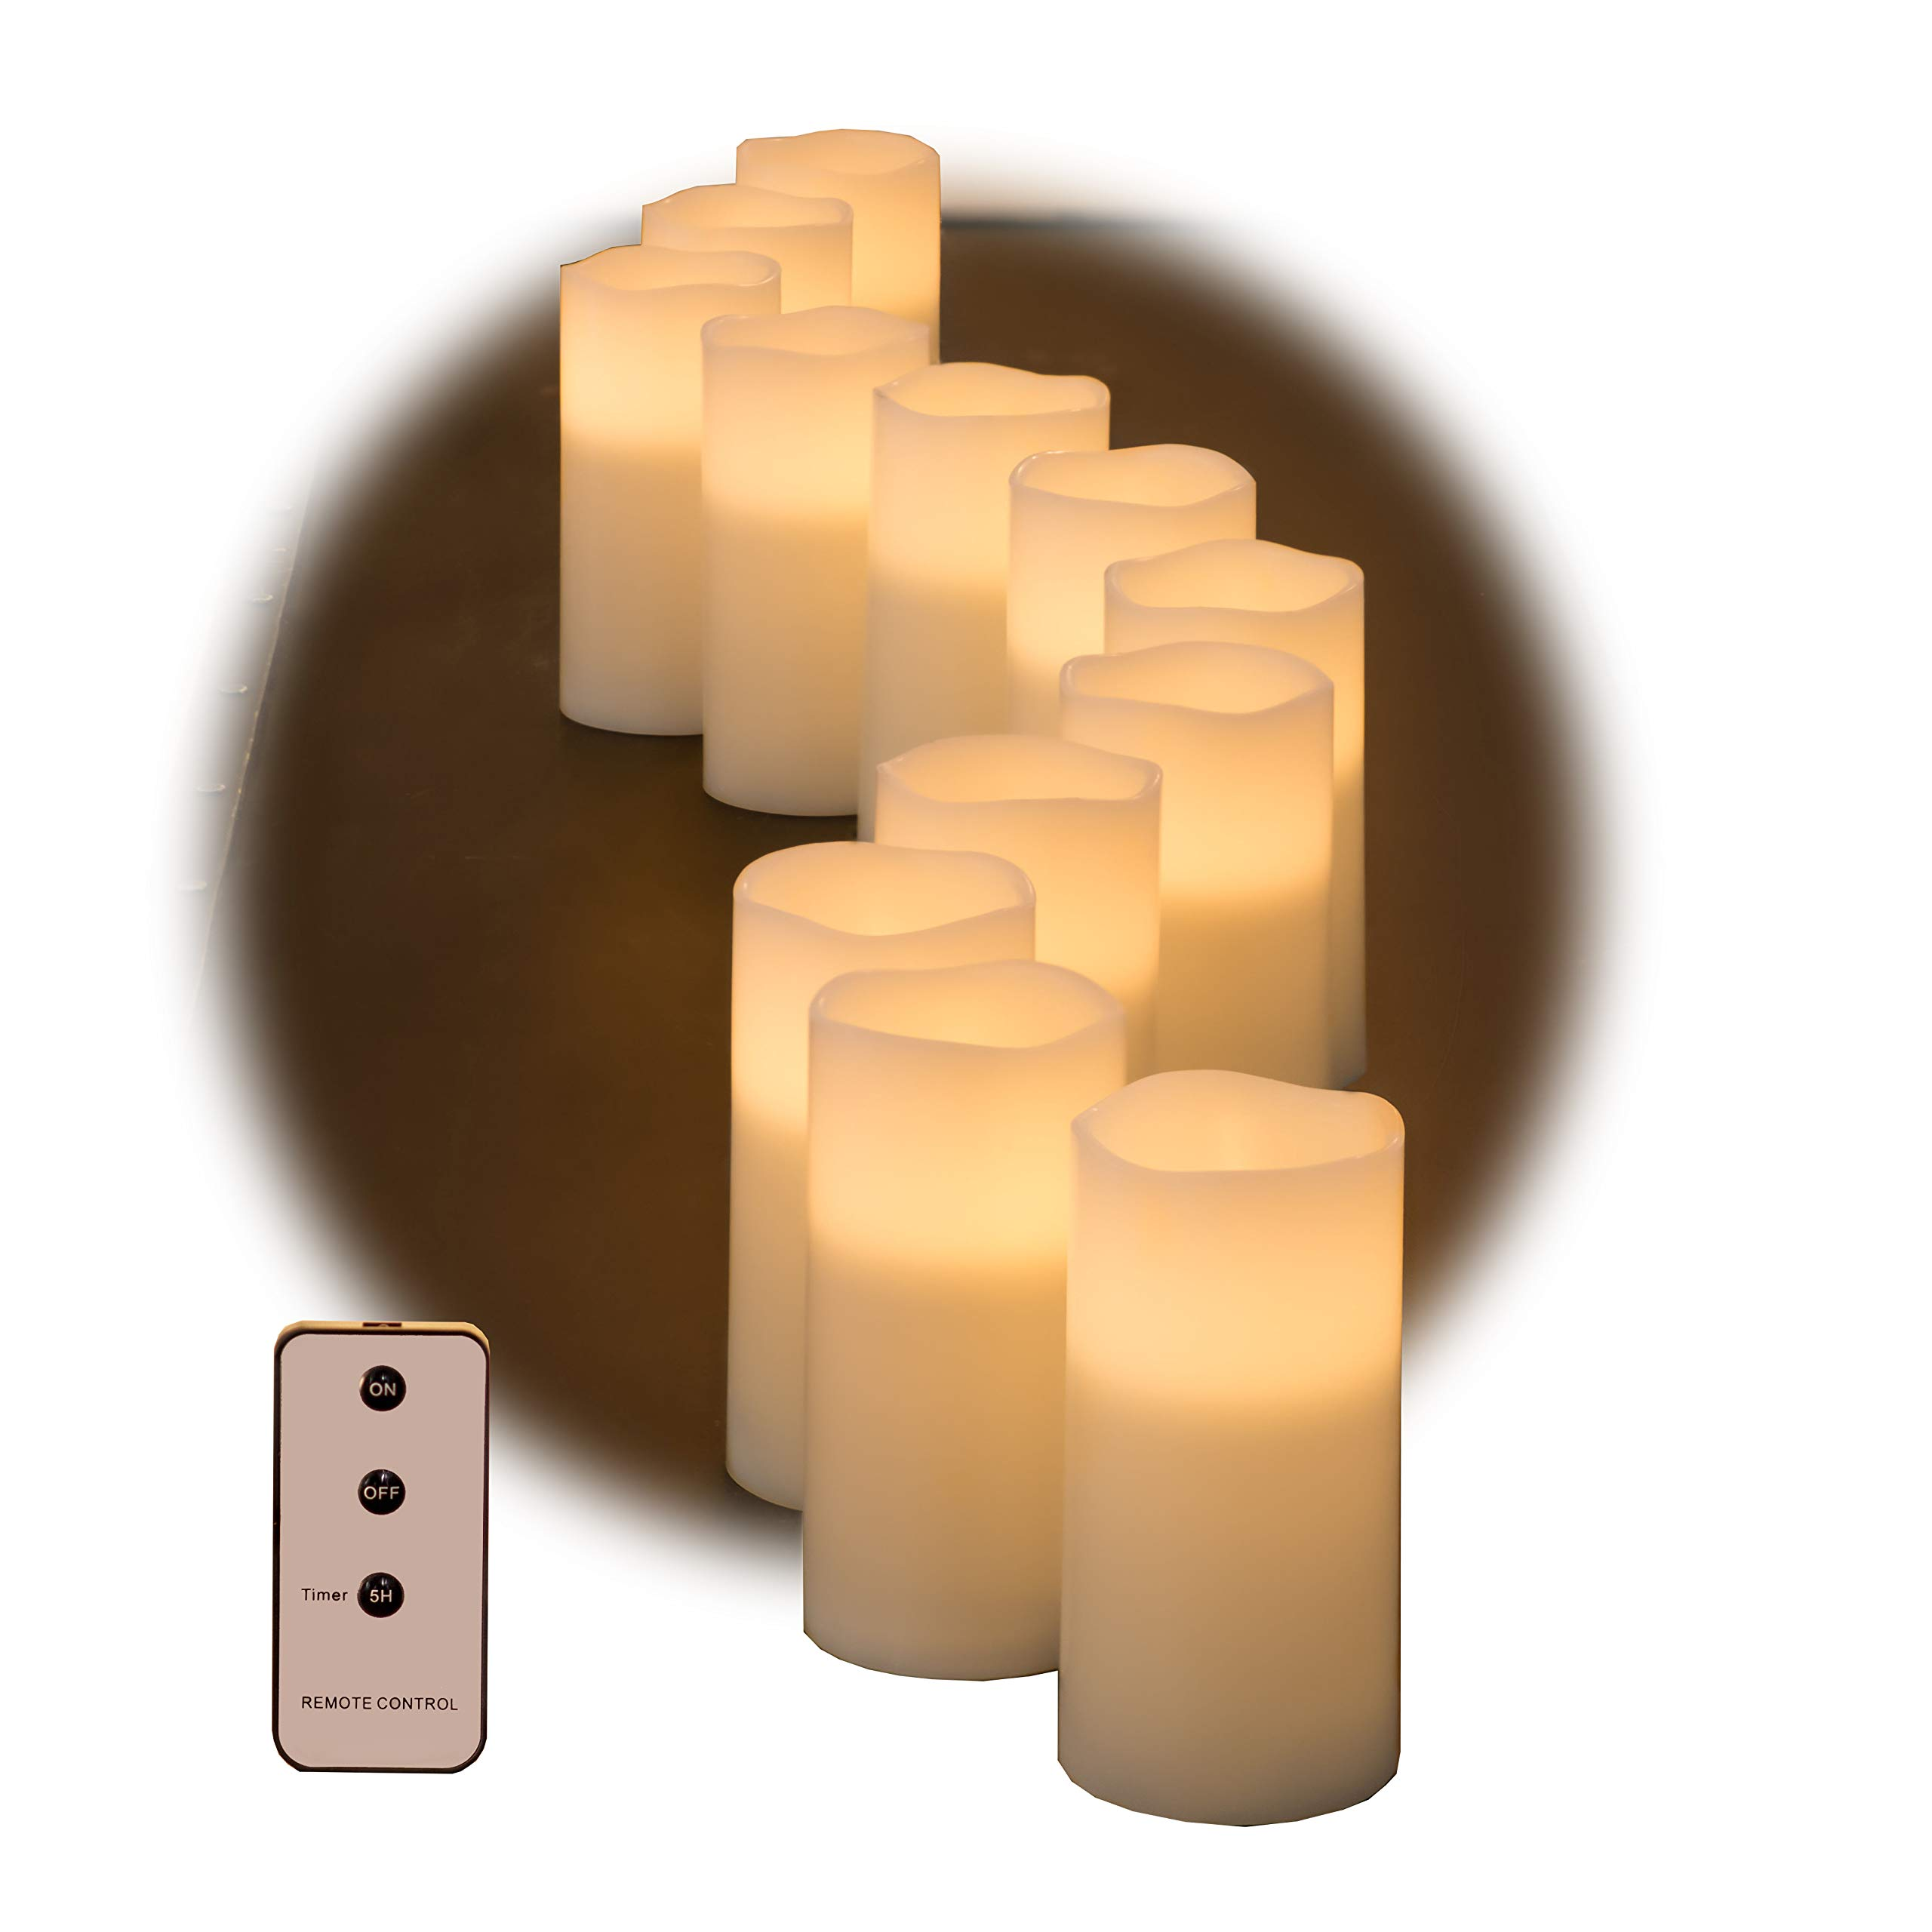 Set of Ivory Wax Remote Controlled Candles with Remote and Batteries (Ivory, 12pk)